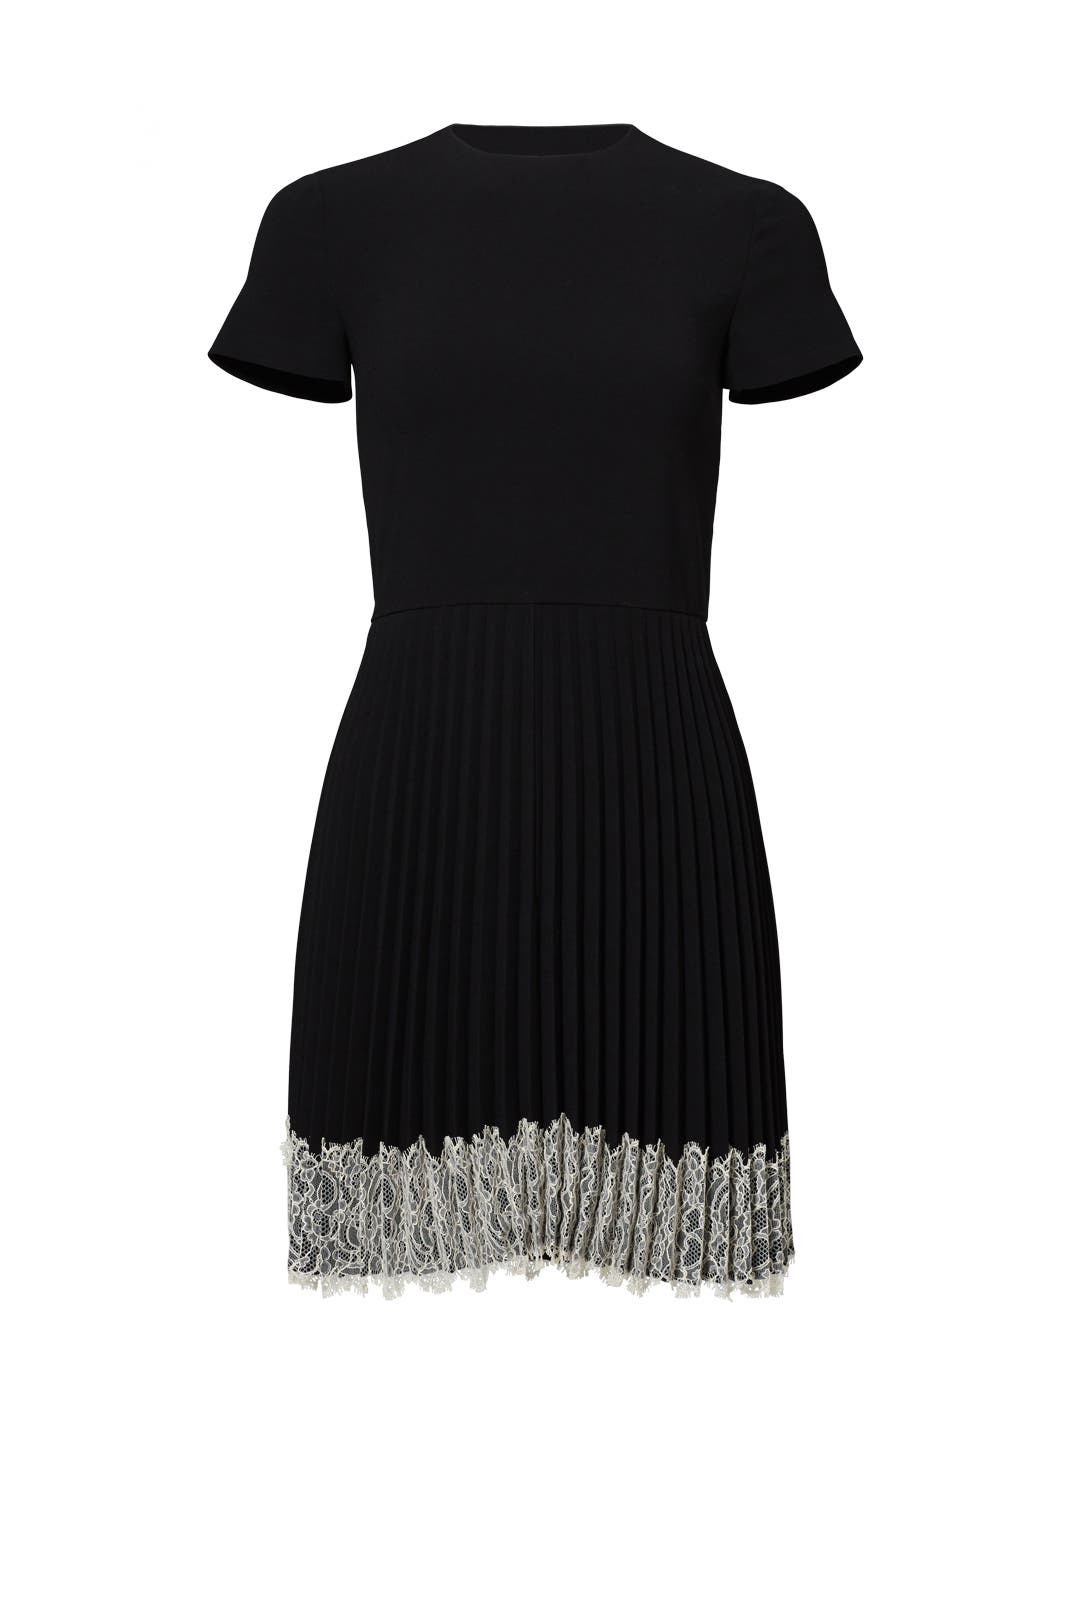 Dress for Women, Evening Cocktail Party On Sale, Red Valentino, Black, acetate, 2017, 10 12 8 Valentino